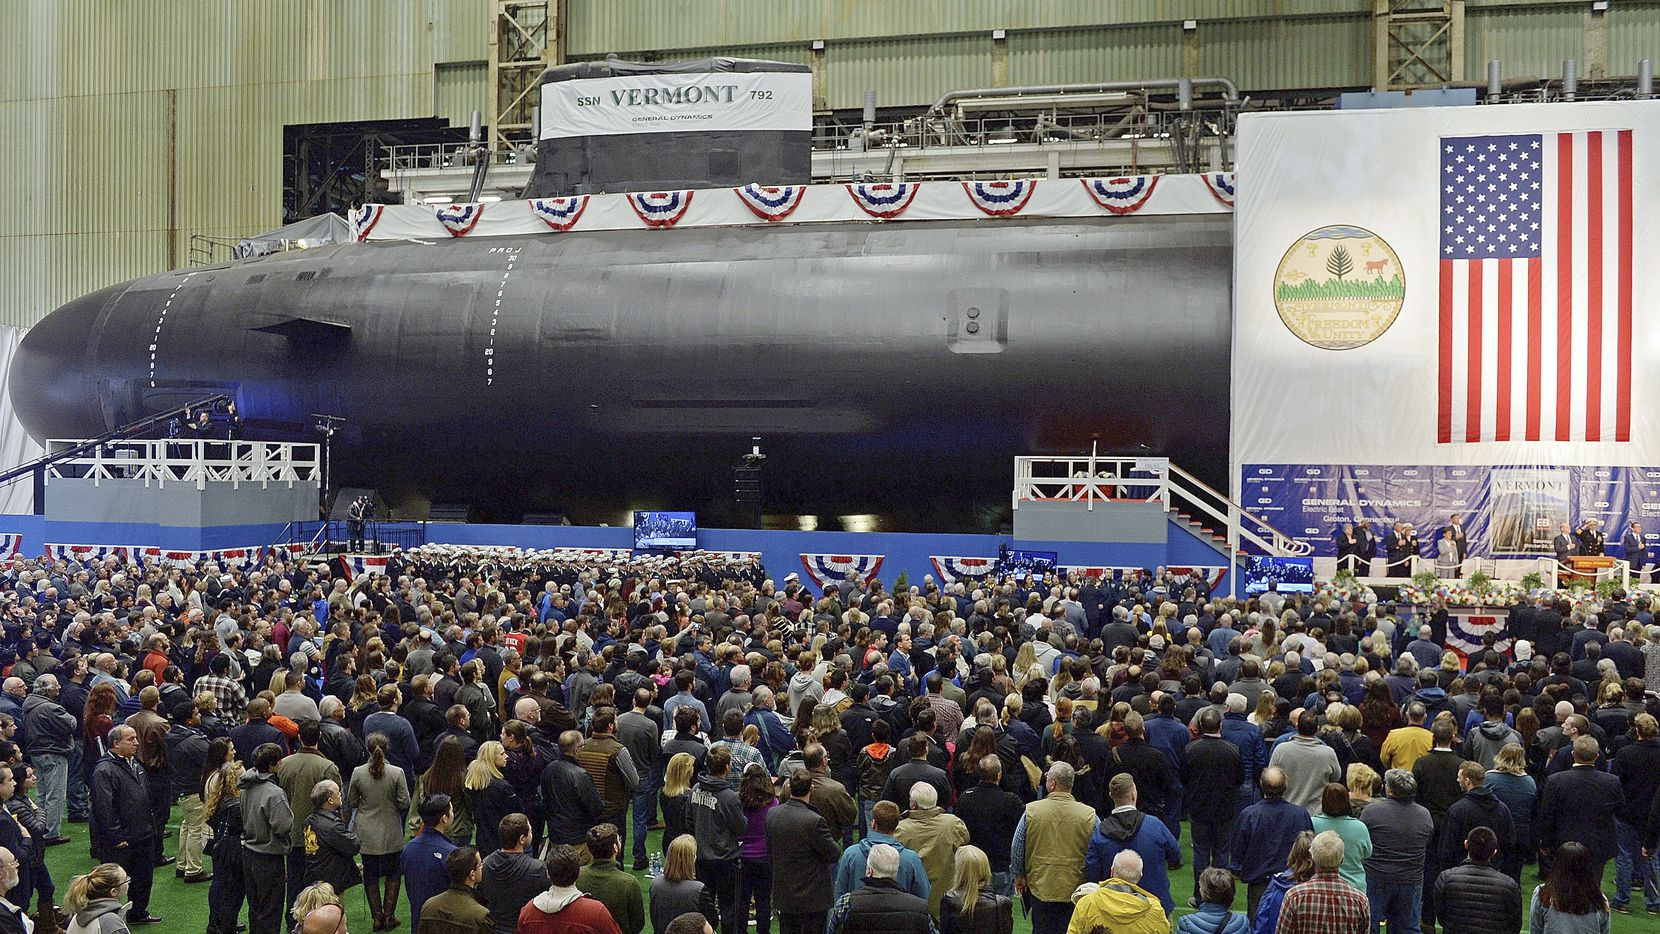 This Oct. 20, 2018, file photo shows the christening of the Navy's nuclear-powered attack submarine USS Vermont at General Dynamics Electric Boat in Groton, Conn.